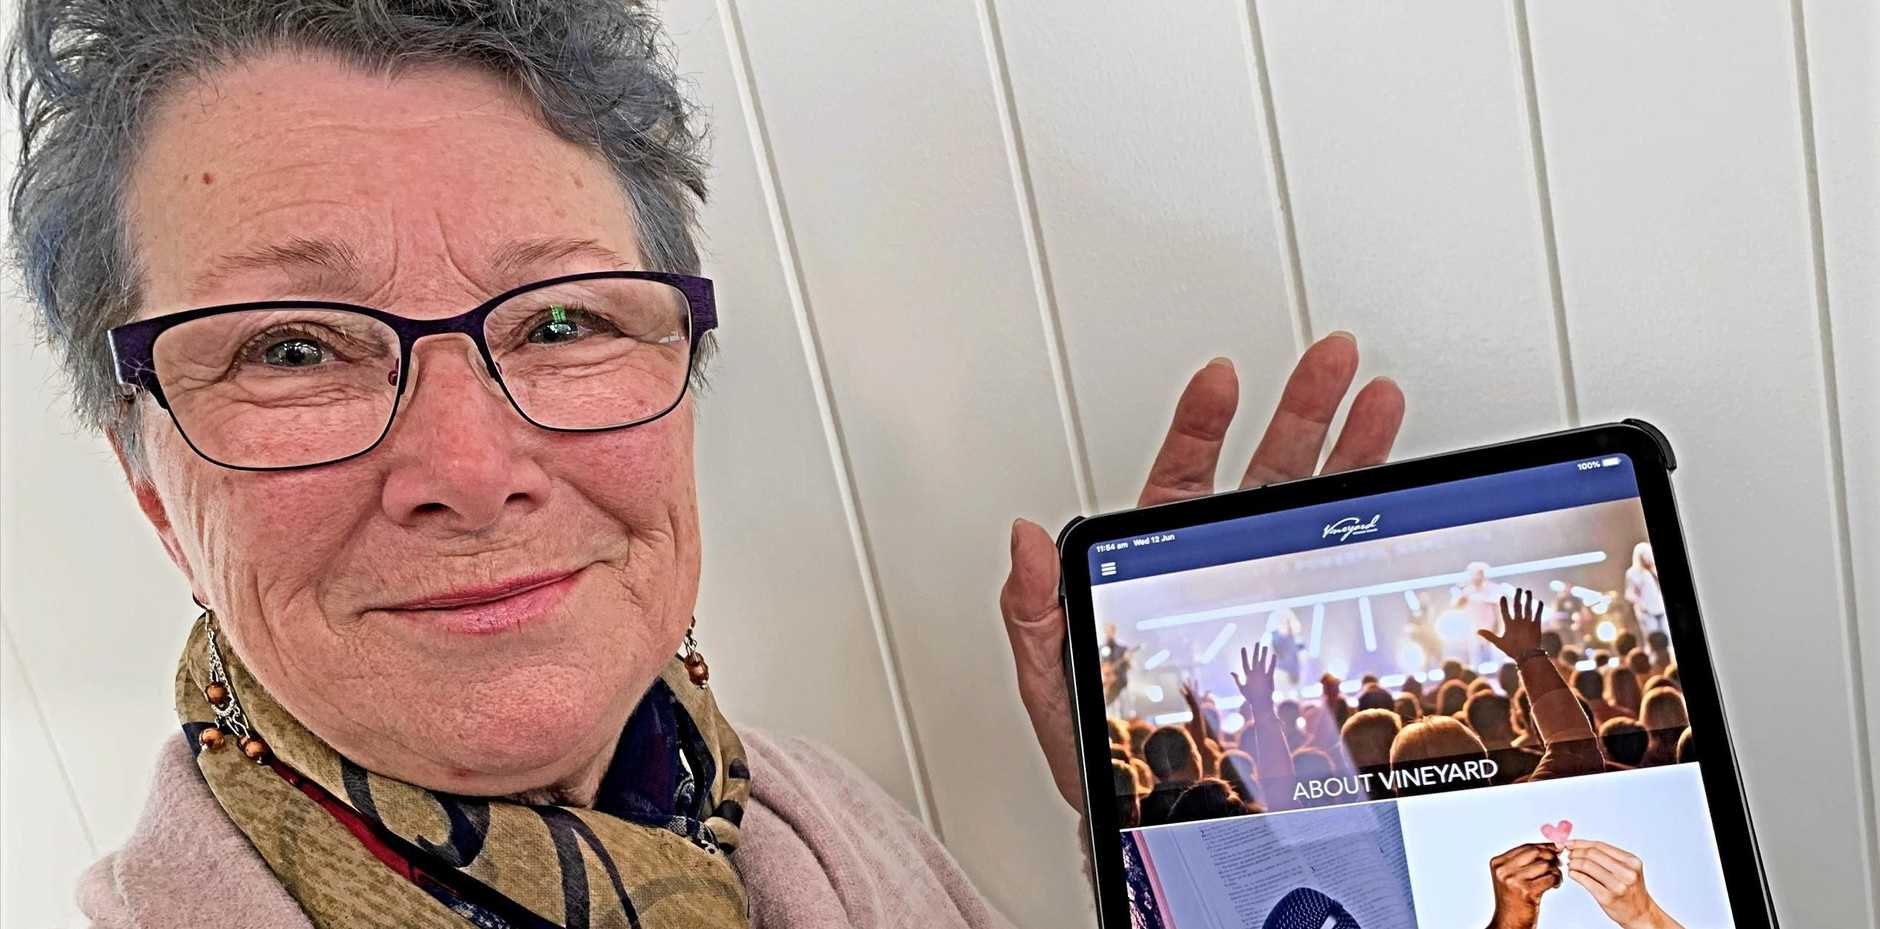 ENTERING A NEW AGE: Vineyard Christian Church are embracing technology with the creation of their own app.